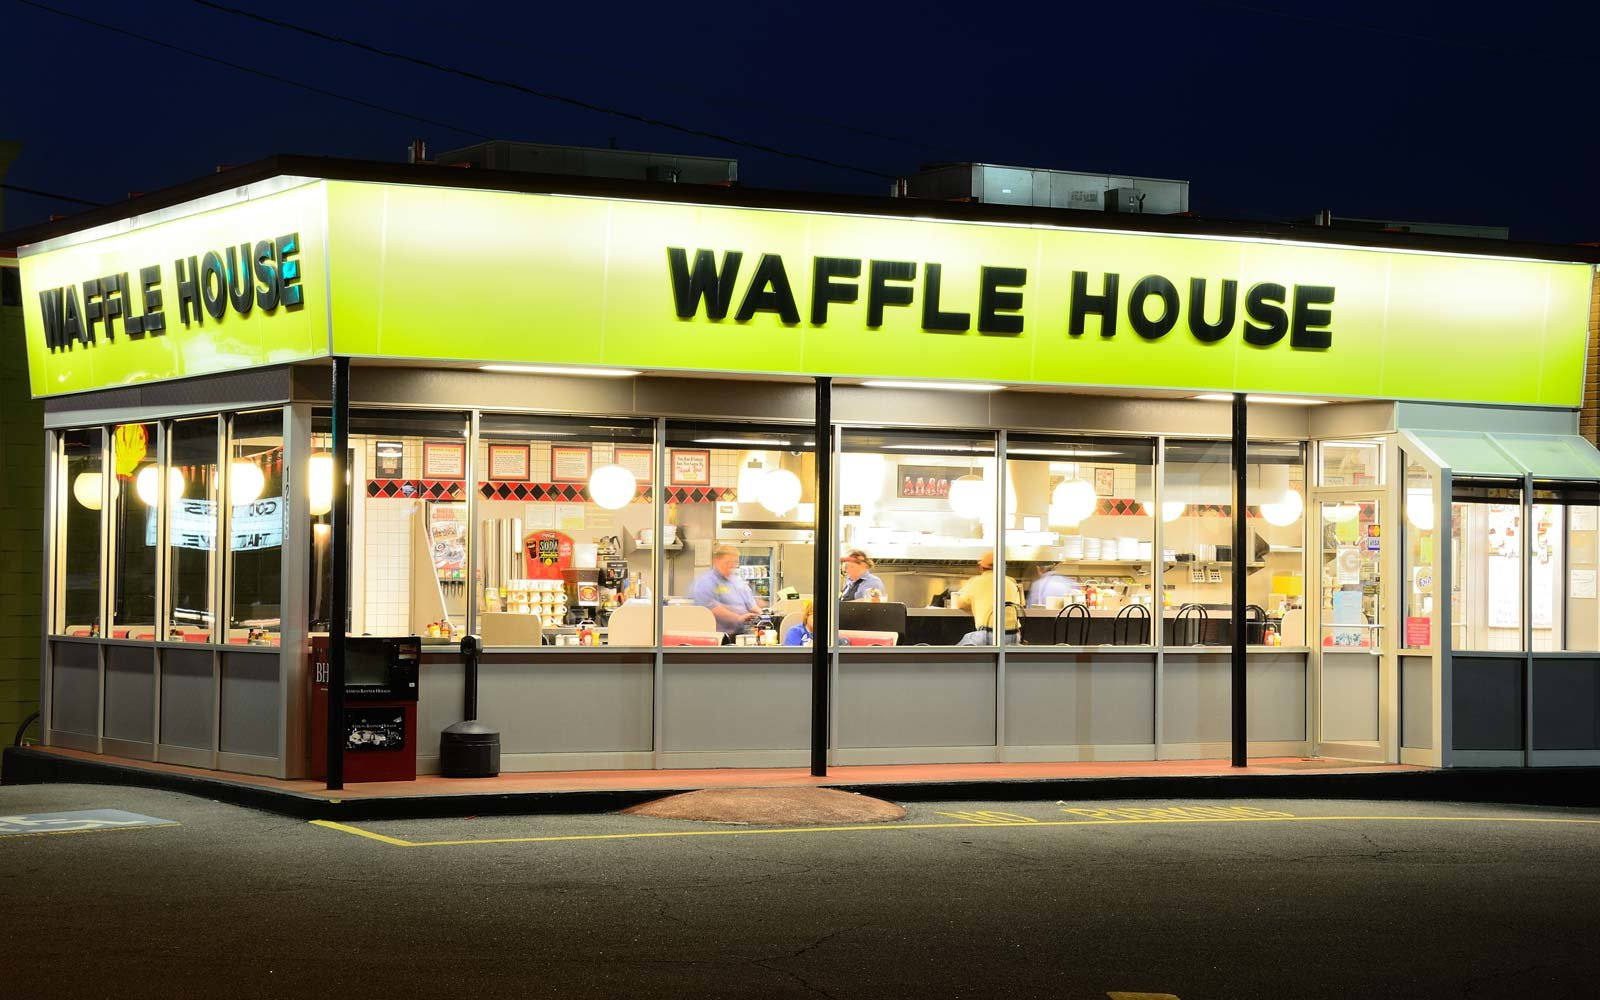 Waffle House is an iconic diner in the Southern United States and is popular for both breakfast and late night dining